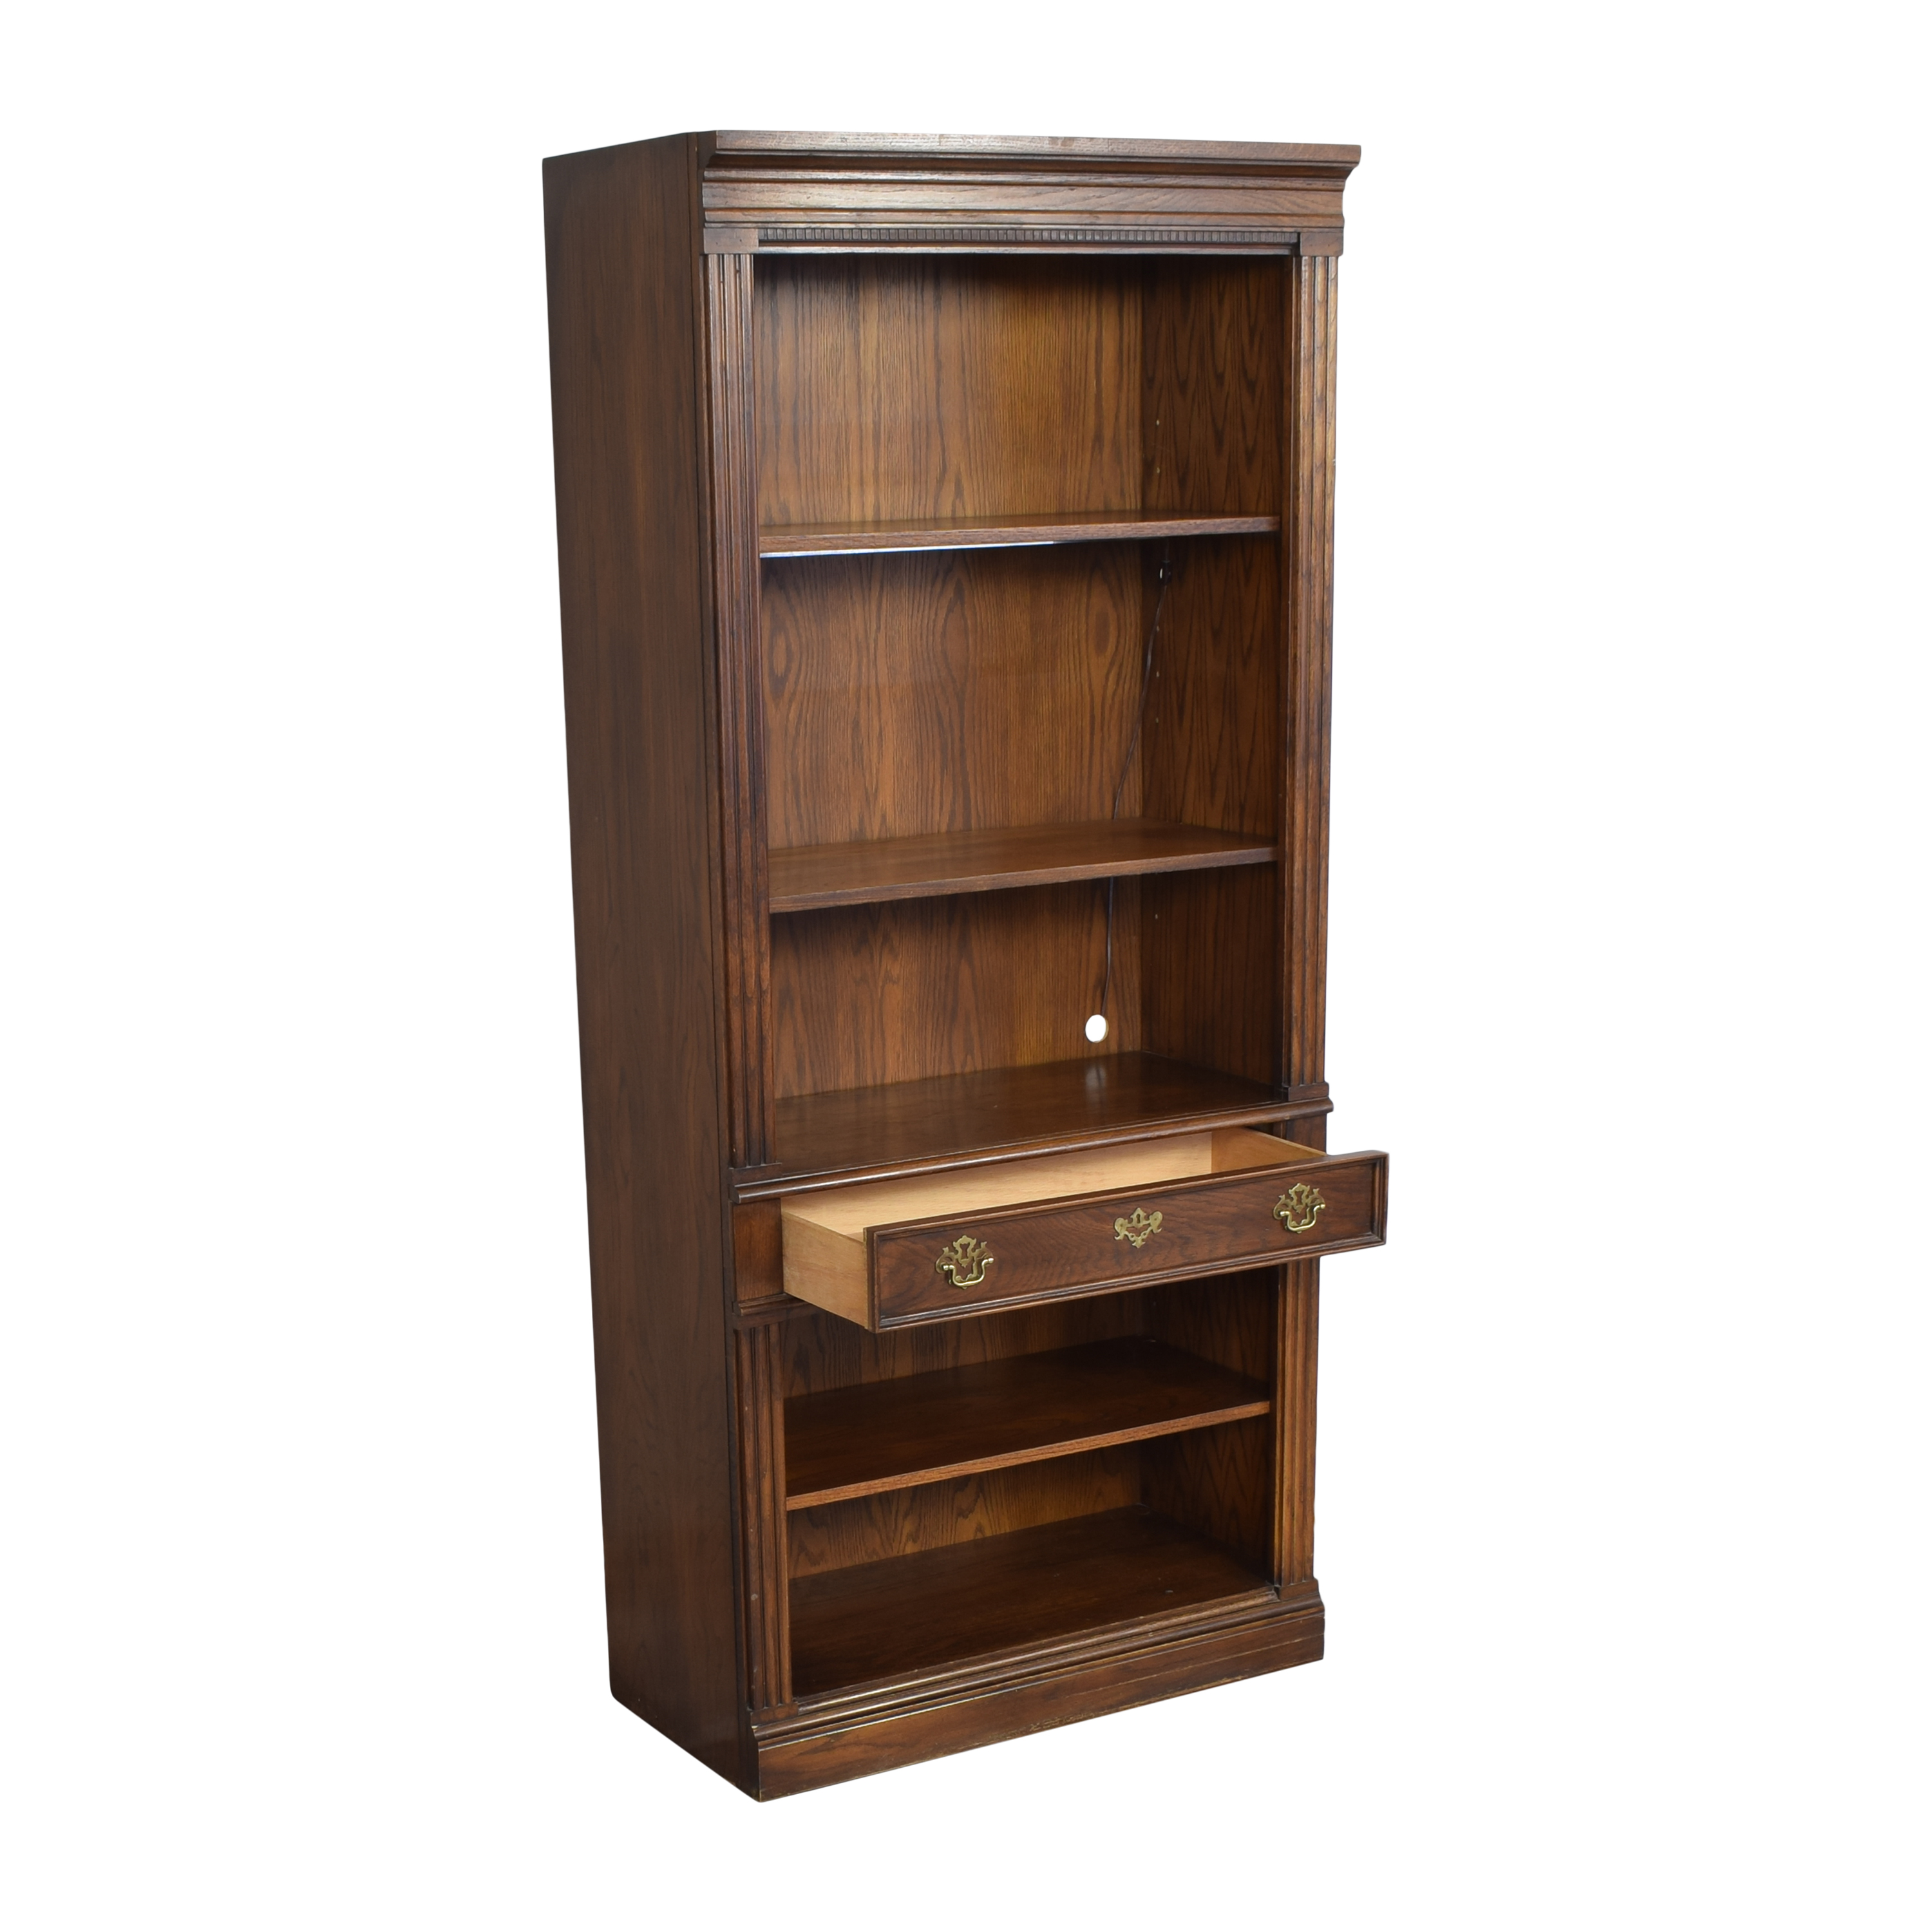 Thomasville Thomasville Bookcase with Drawer ct